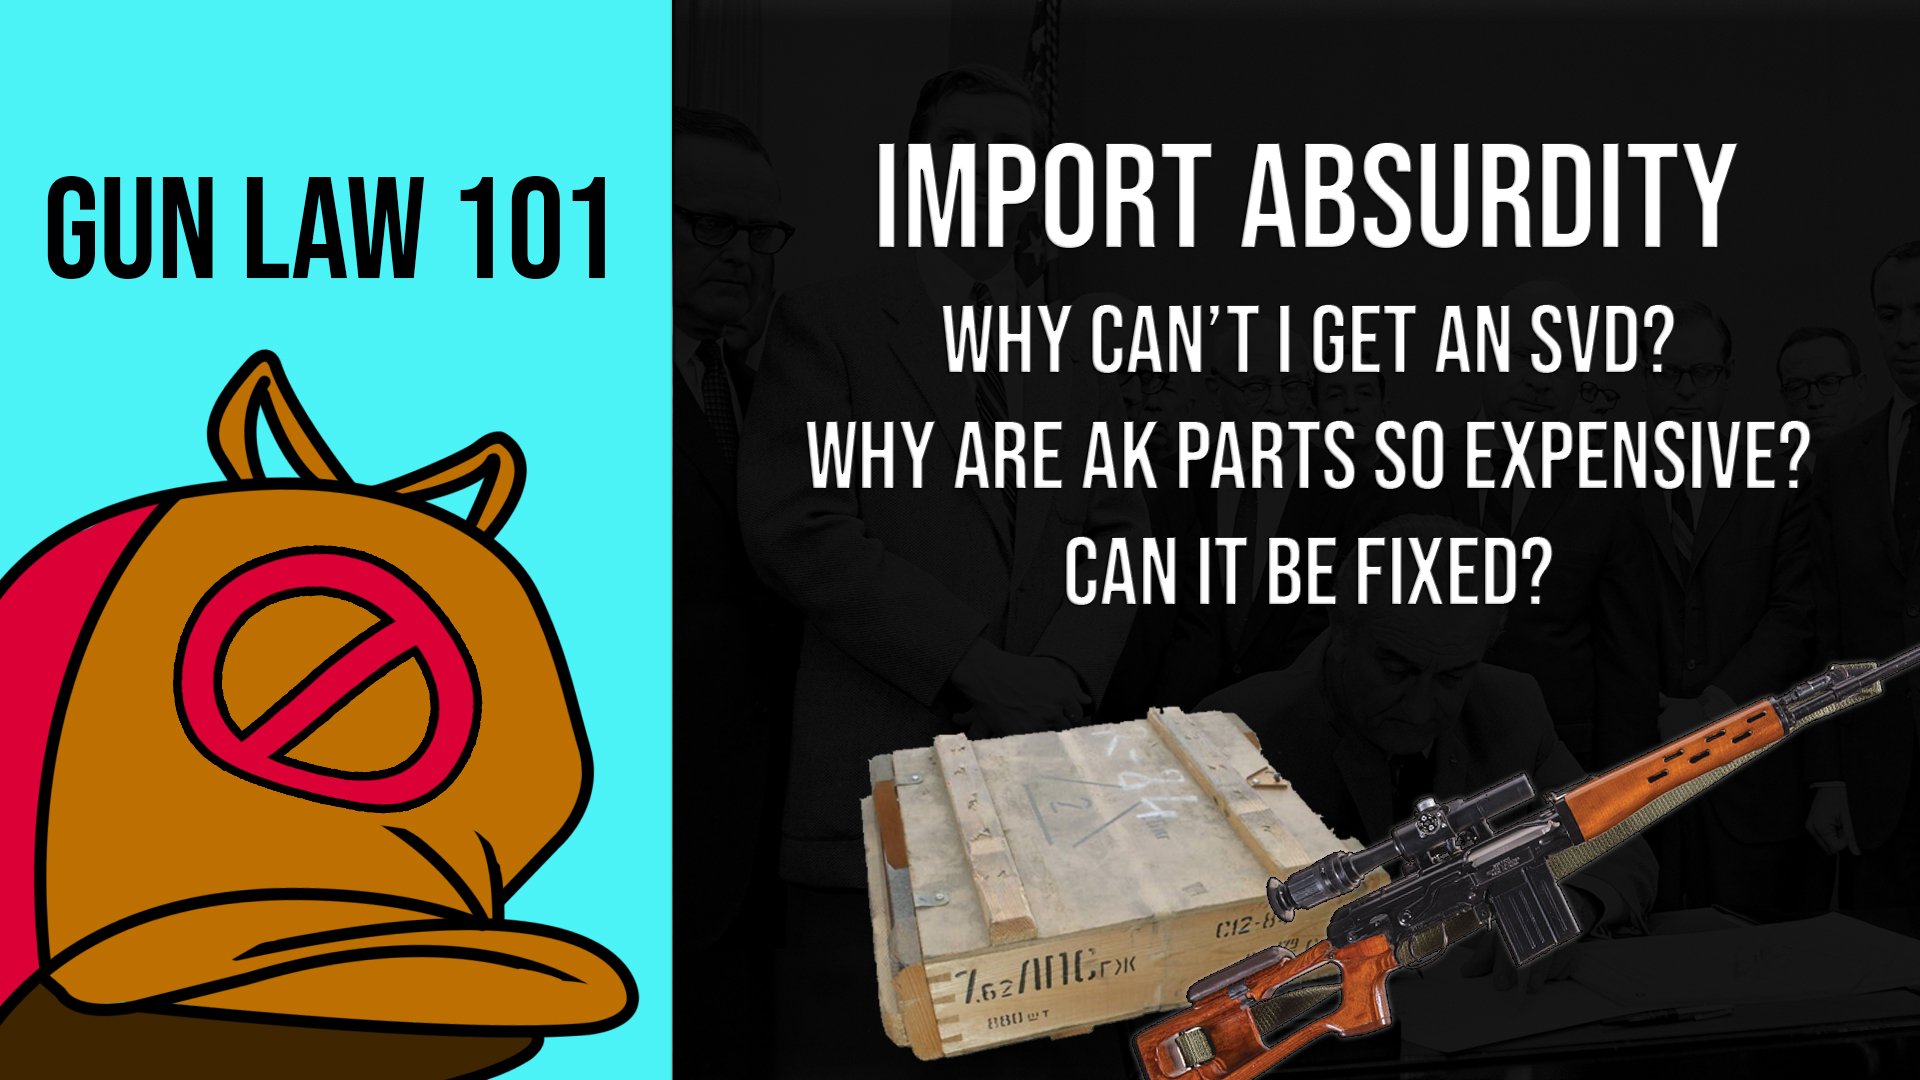 Gun Law 101: Import Absurdity – Why is importing cool guns so hard? Why can't we get SVDs and AKs?